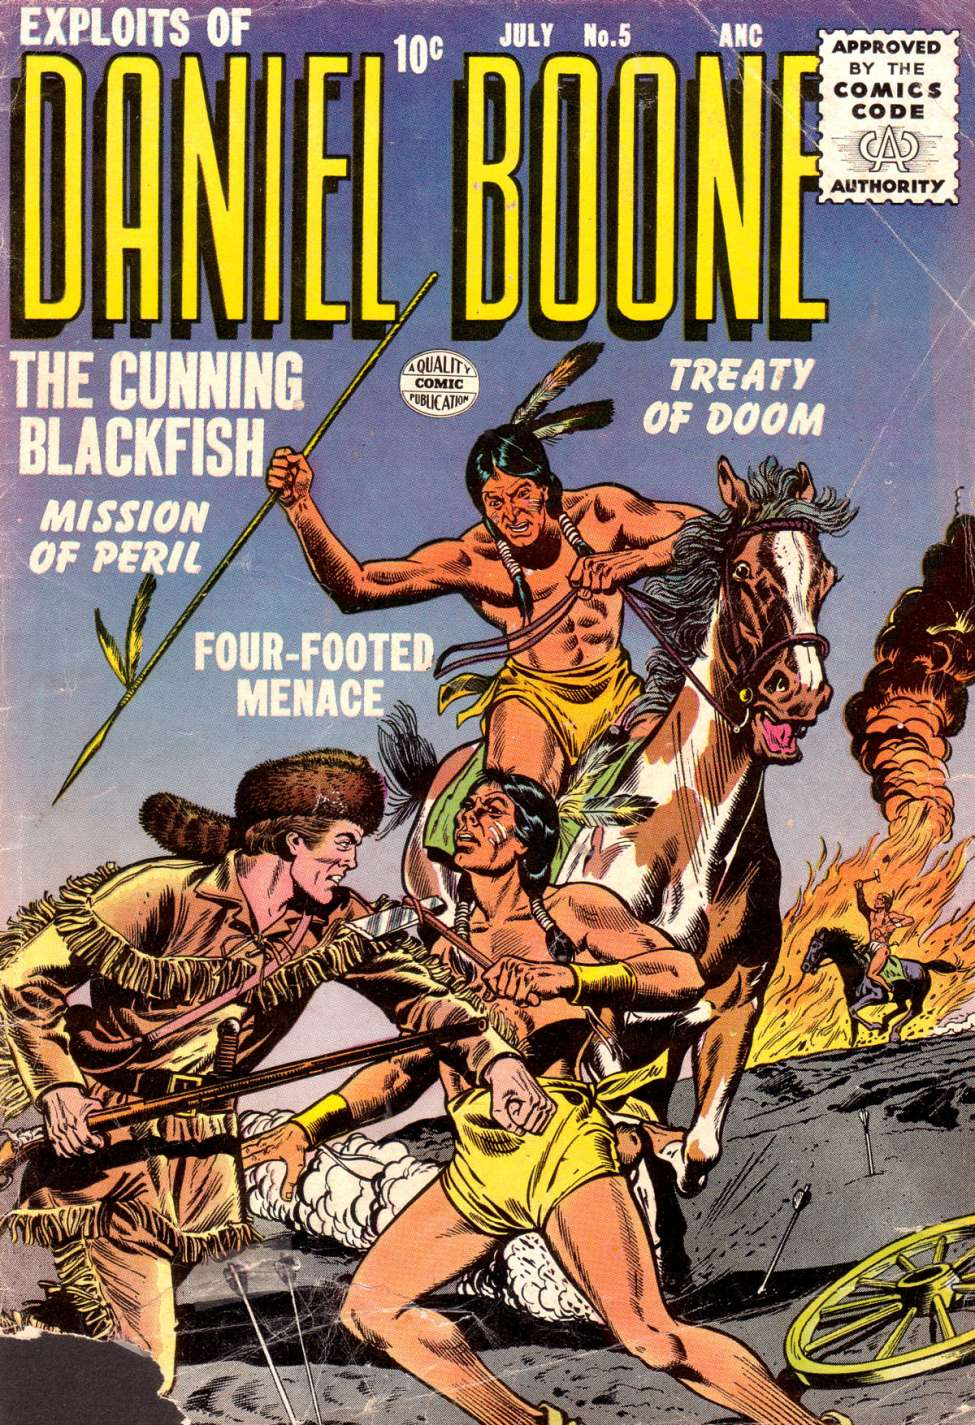 Comic Book Cover For Exploits of Daniel Boone #5